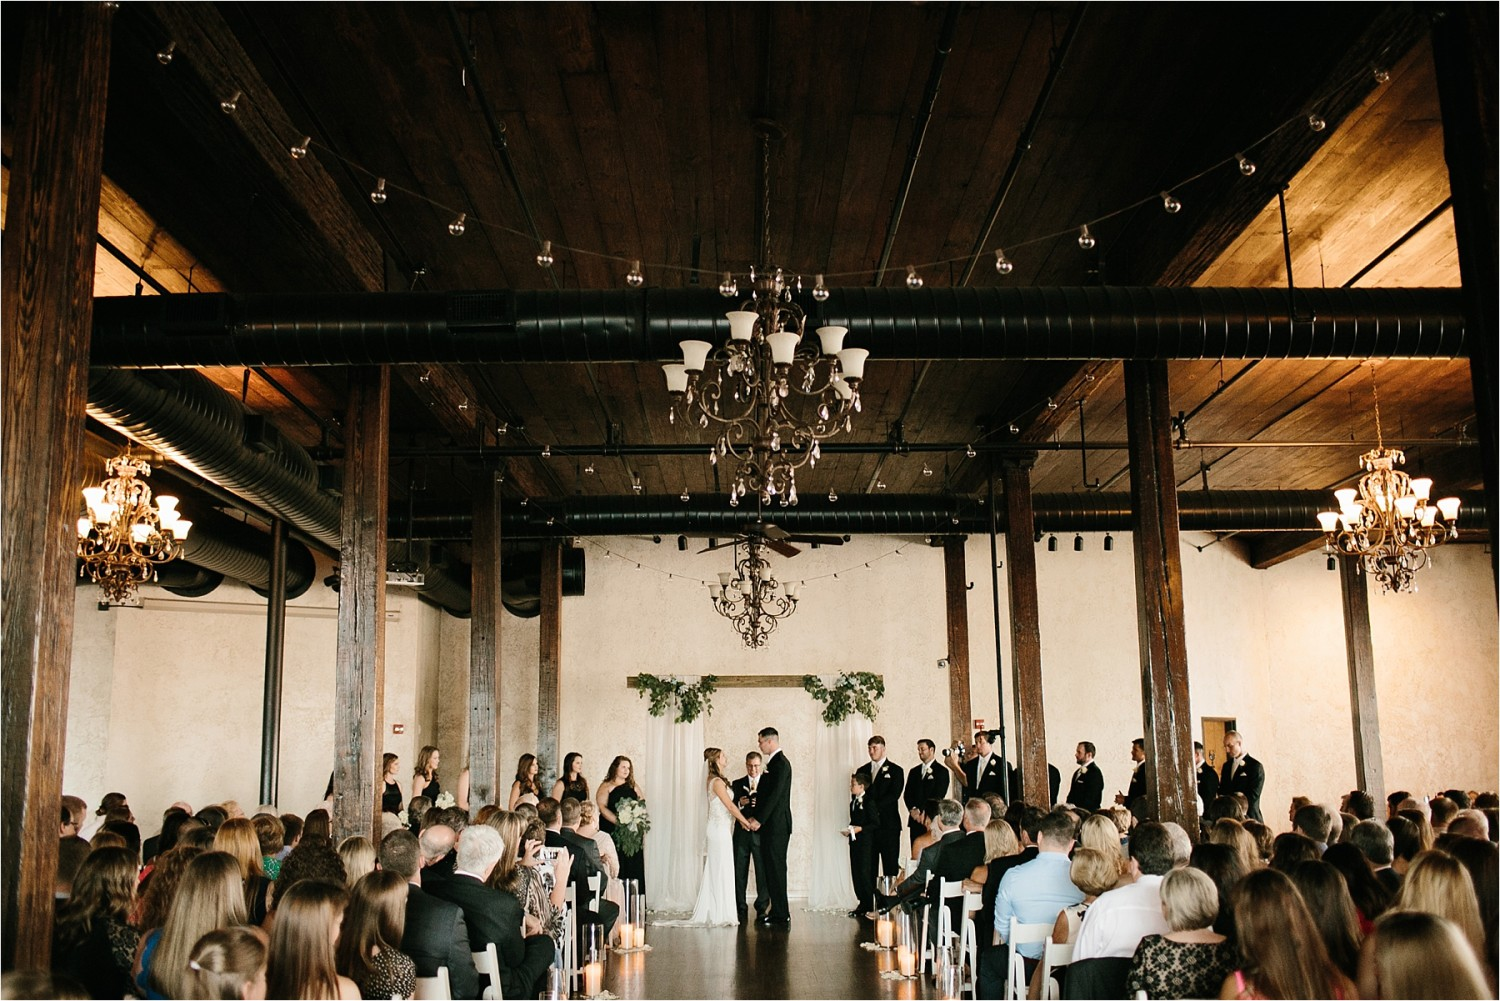 Holly + Jordan __ a black, gold, and greenery organic wedding at The Phoenix Ballroom in Waco, TX by North Texas Wedding Photographer Rachel Meagan Photography __ 62